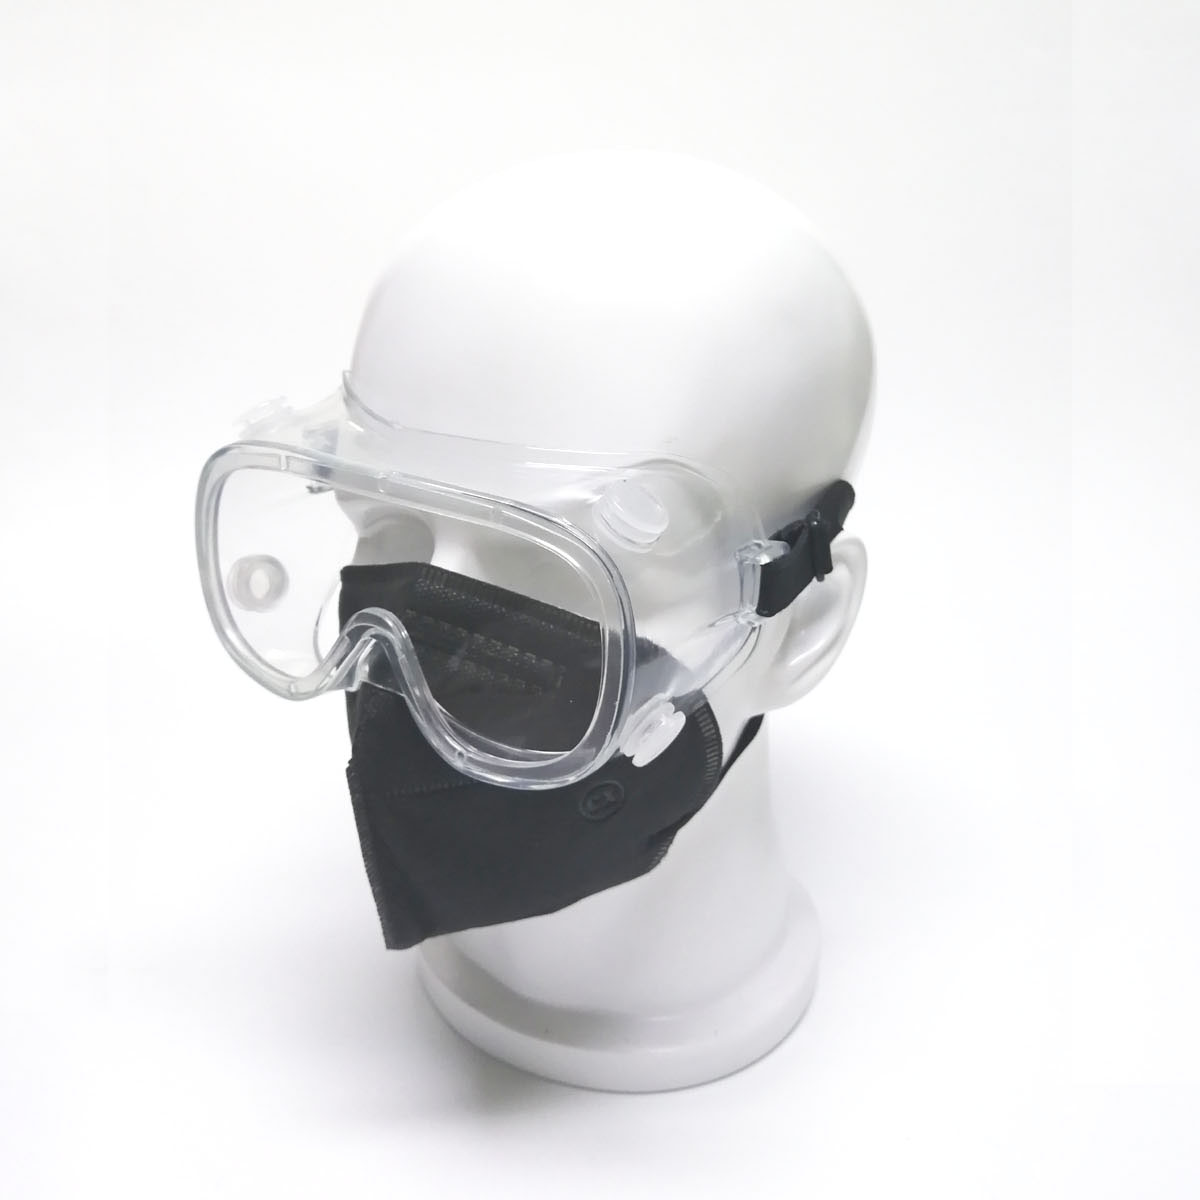 dust-proof and Splash proof Wholesale safety glasses isolation protective googles